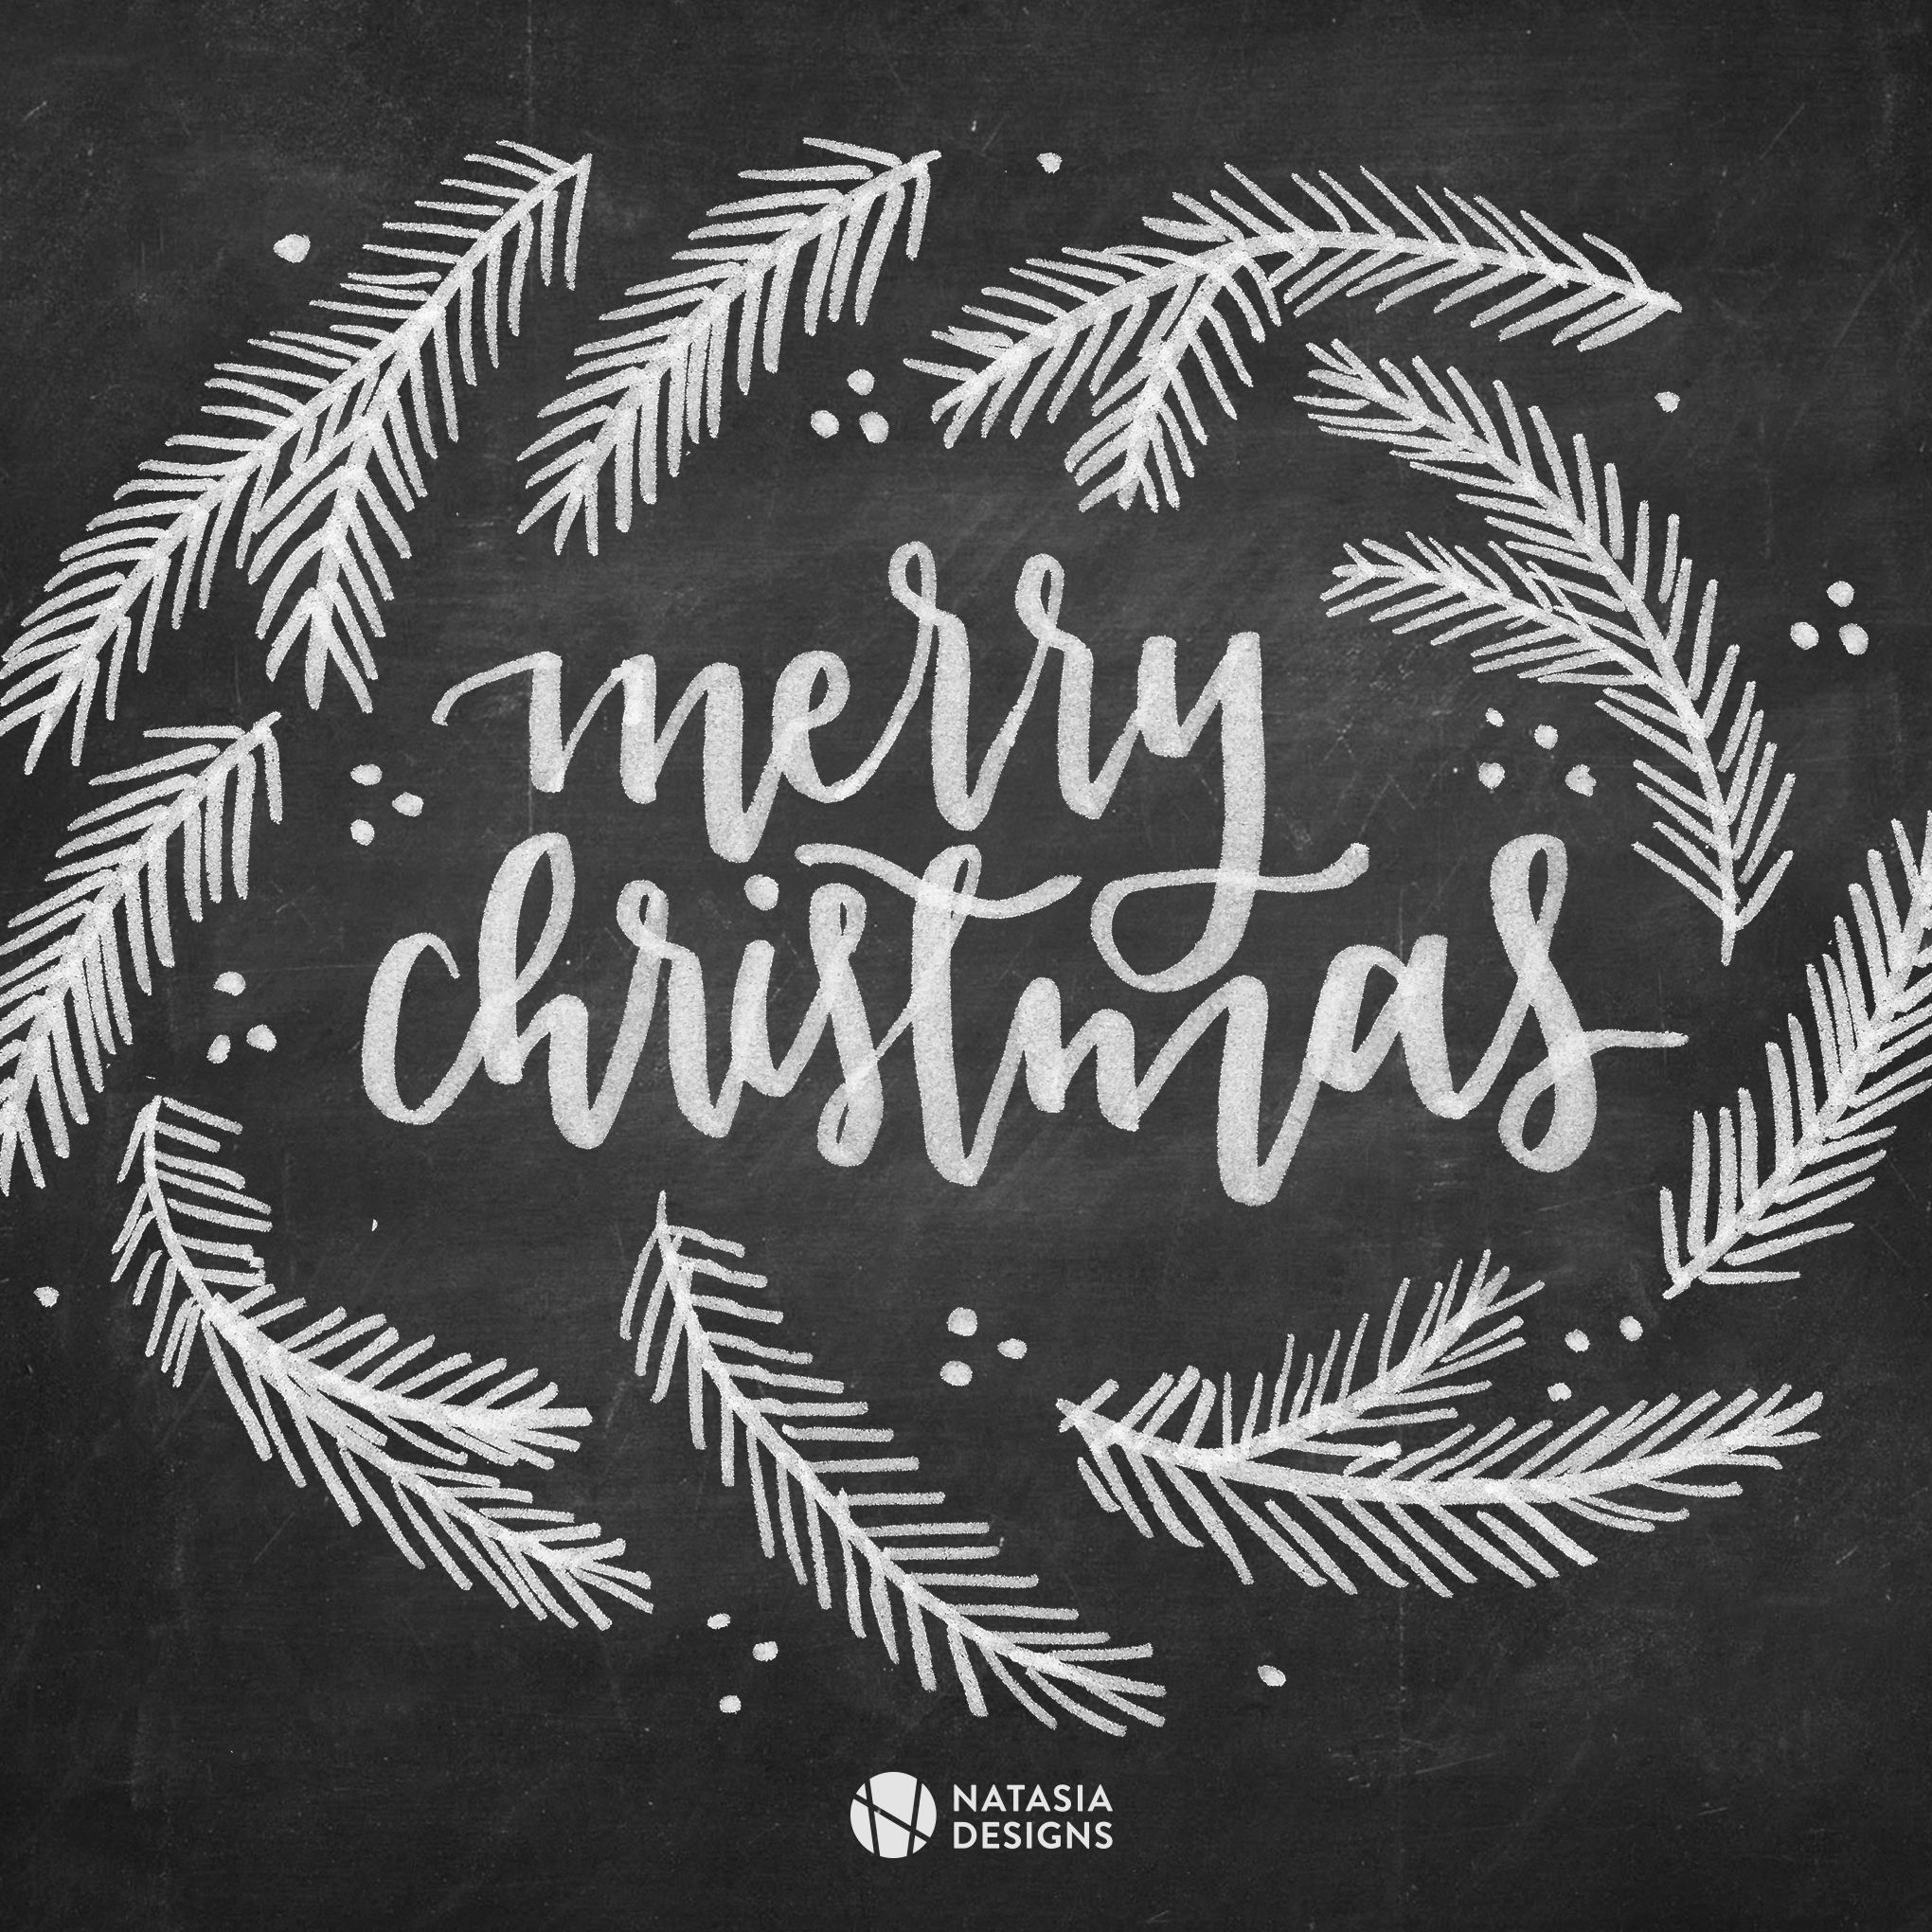 Natasia Designs Graphic Design Lettering Freebie Social Media Posts Christmas Holiday Free